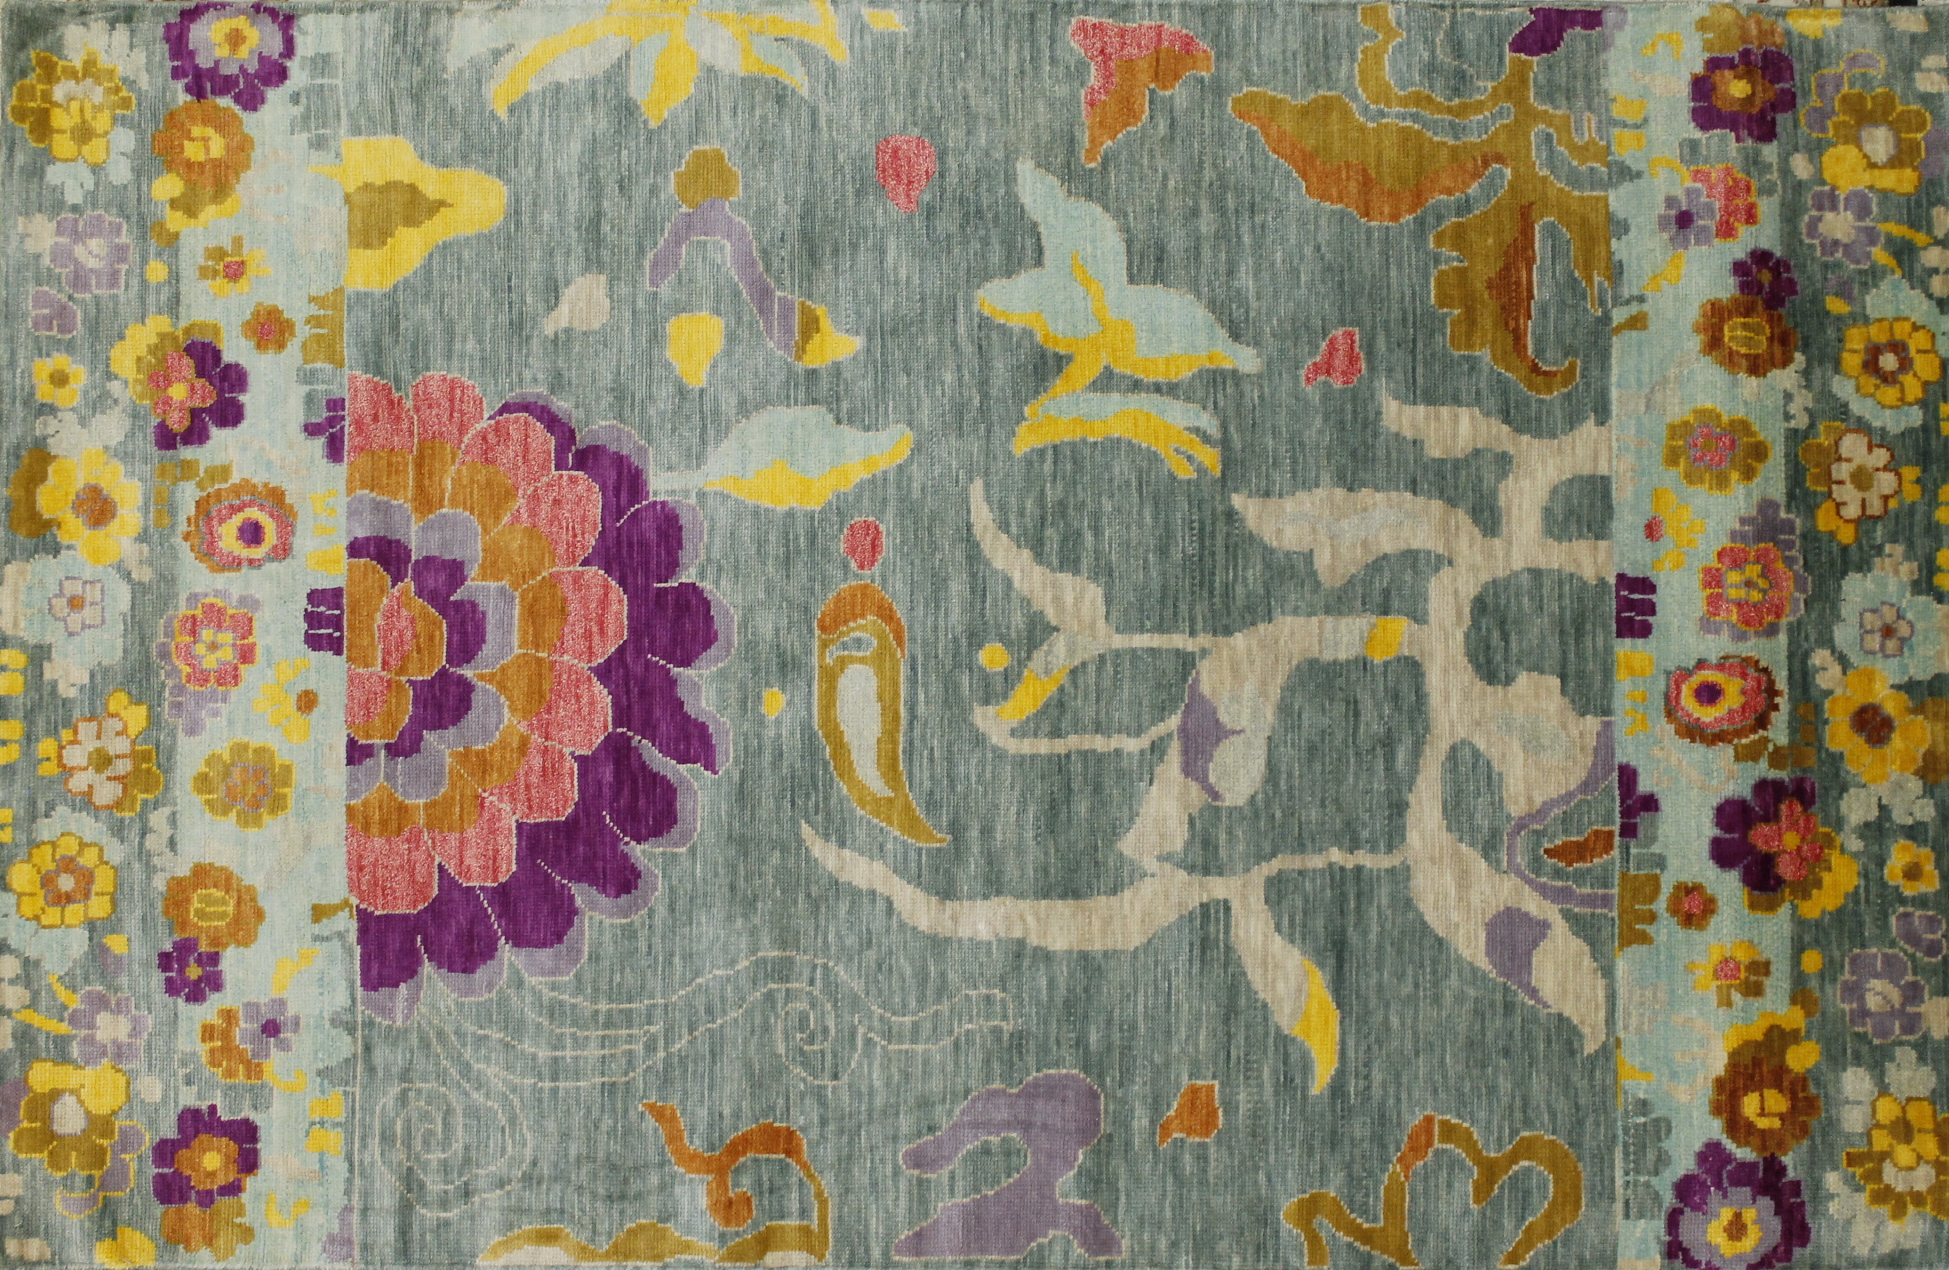 5x7/8 Contemporary Hand Knotted Wool Area Rug - MR022441